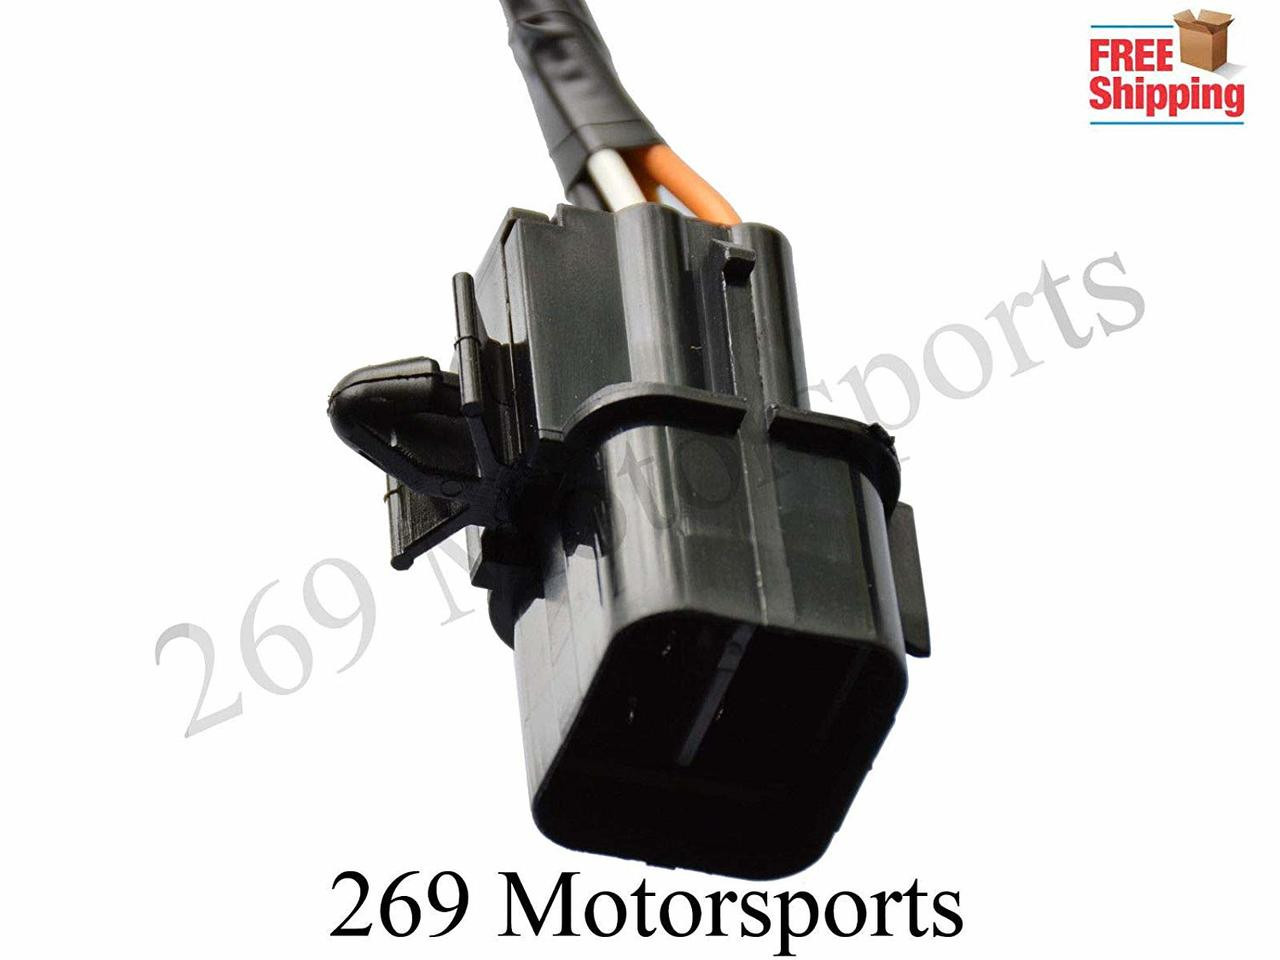 Ignition Coil Wire Harness For 10-14 Veloster Rio Soul 1.6L Replaces on